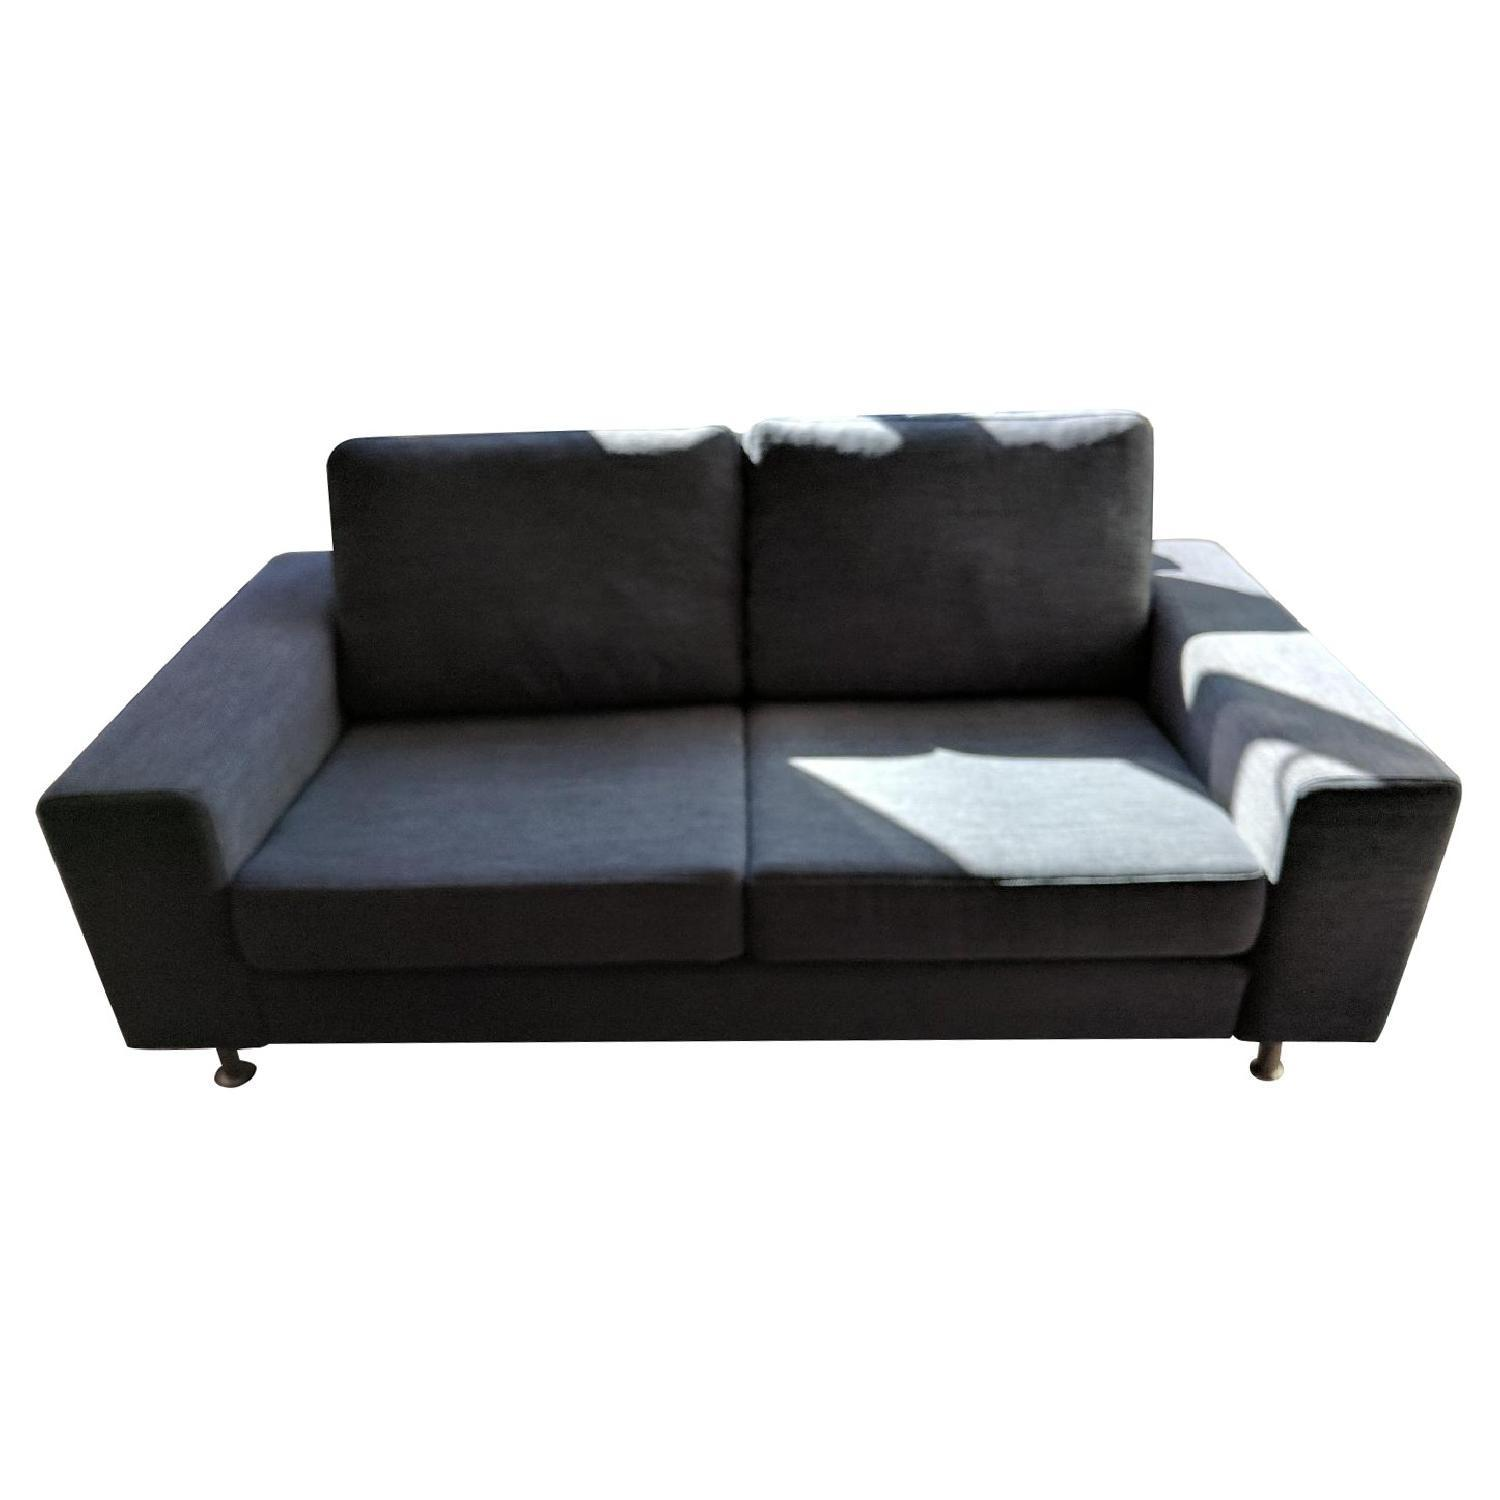 Boconcept Indivi2 Sofa In Dark Gray Nani Fabric Aptdeco